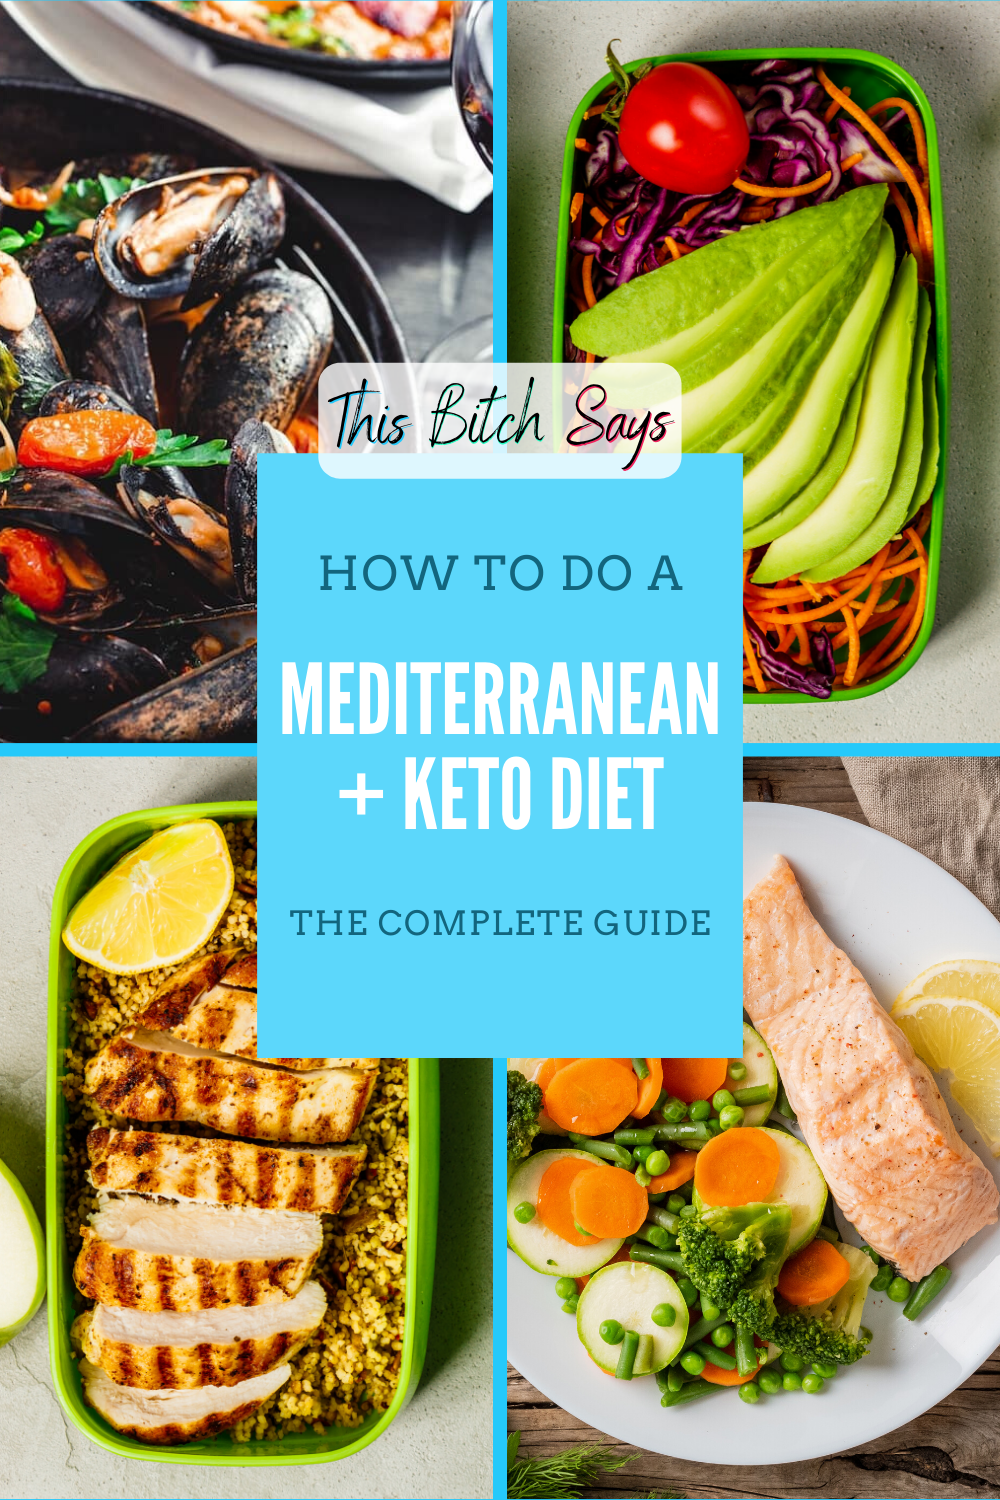 The Mediterranean Keto Diet What To Eat 7 Day Meal Plan Keto Diet Guide 7 Day Meal Plan Keto Diet